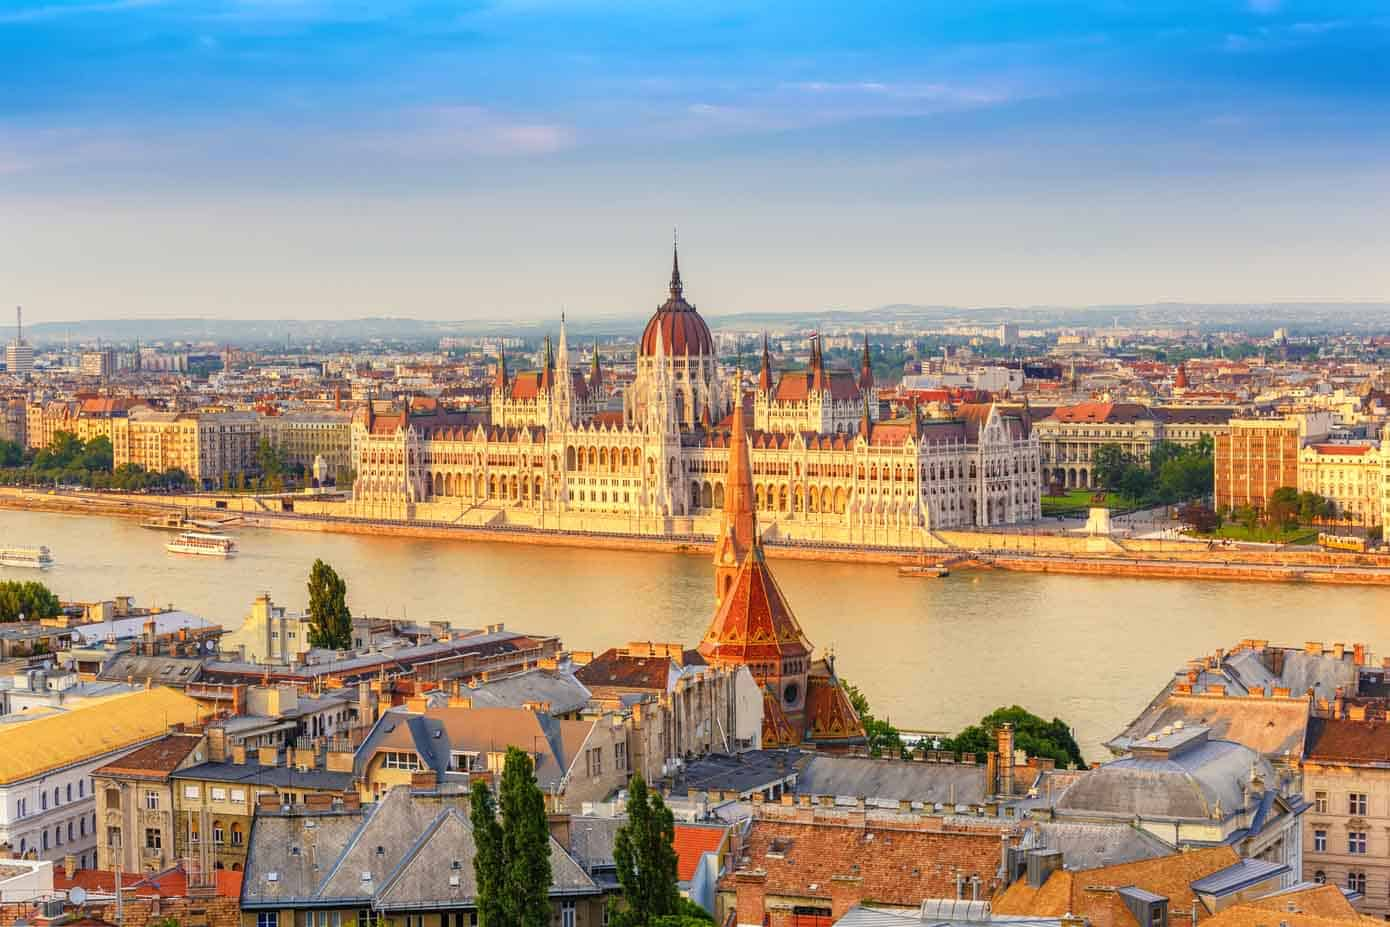 Hungarian Parliament building in Budapest on the Danube River.